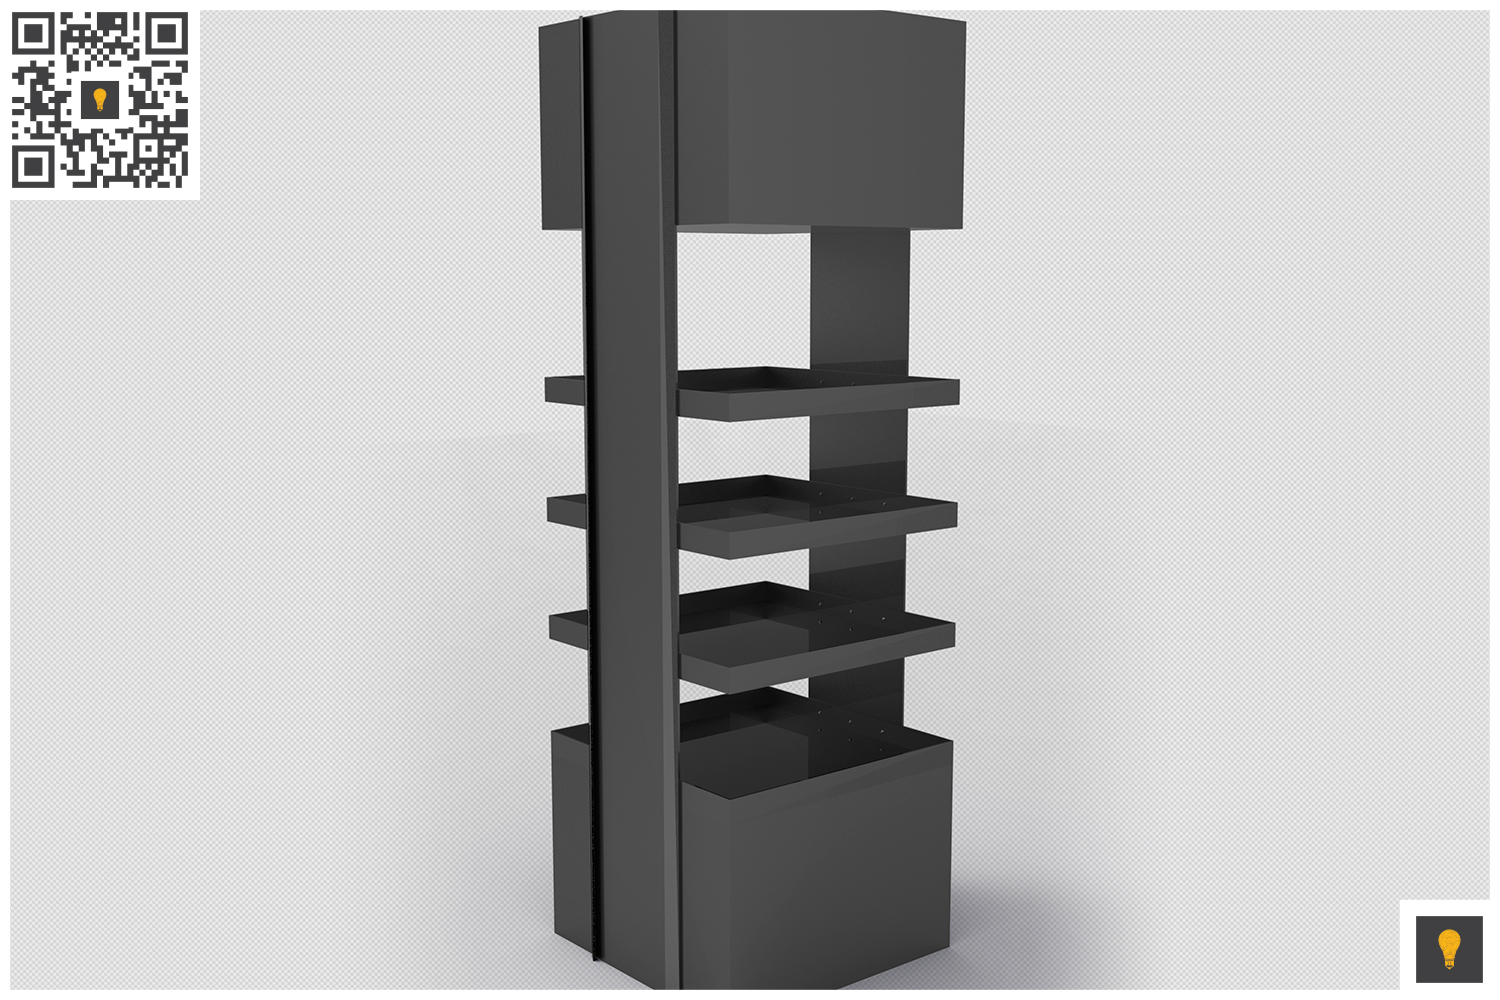 Promotional Store Shelf Stand 3D Render example image 4